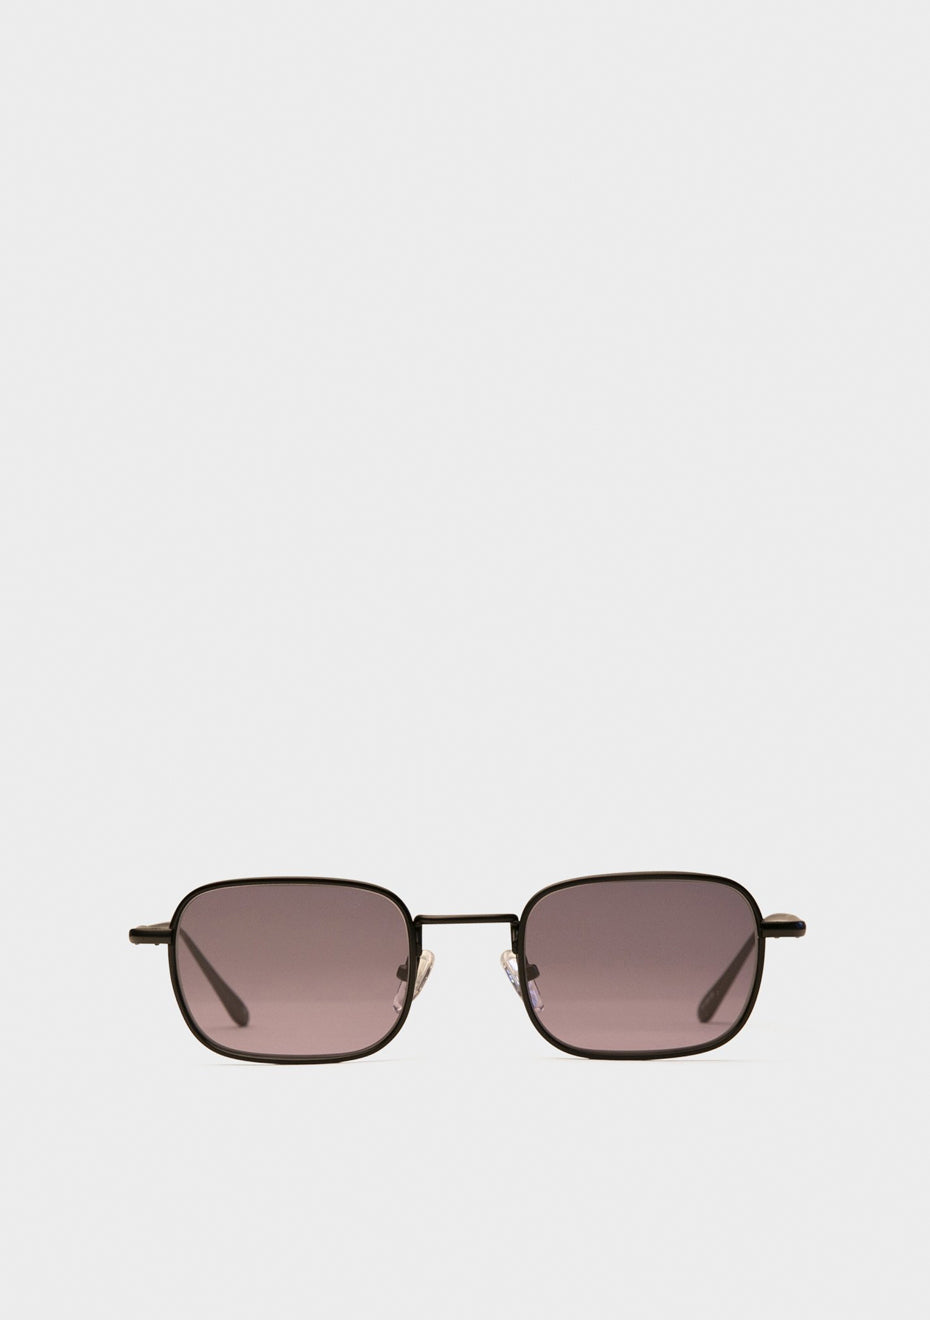 Stanley Black Sunglasses